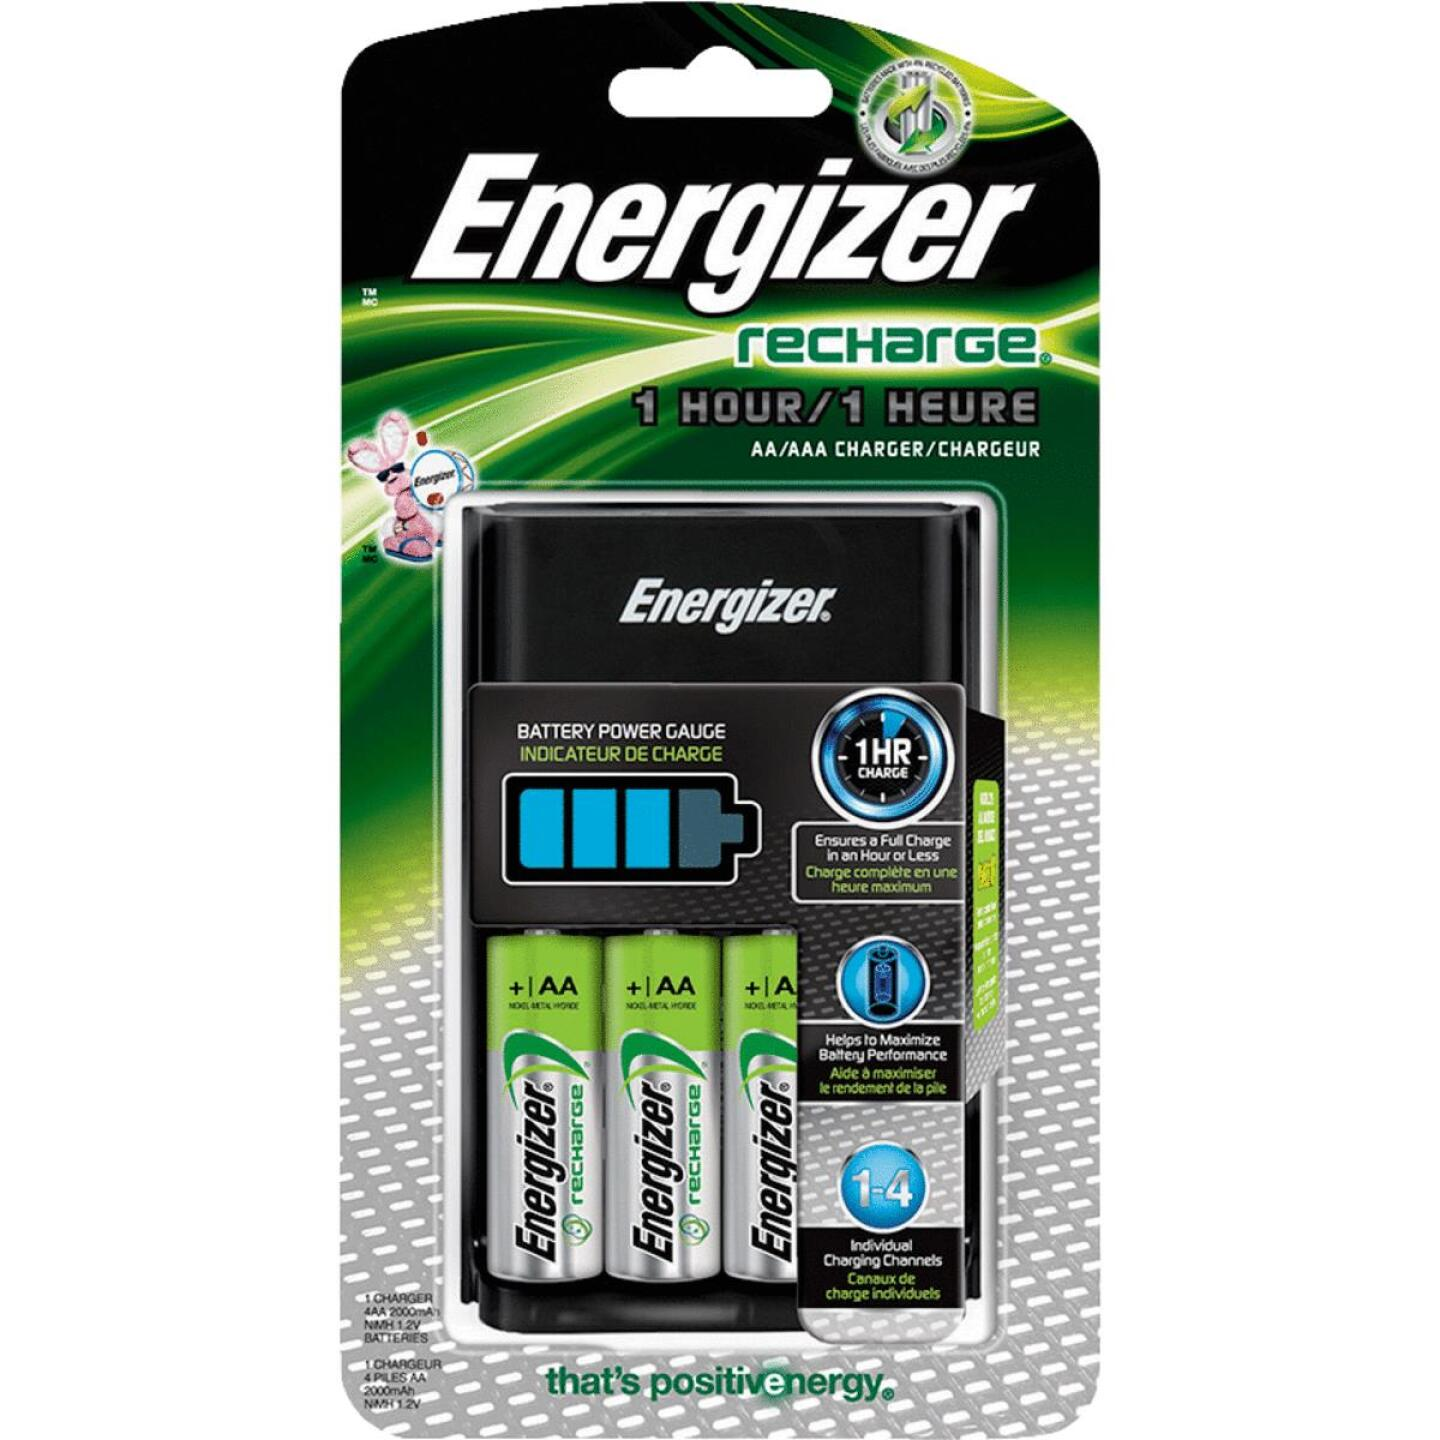 Energizer Recharge (4) AA or (4) AAA NiMH Battery Charger Image 1